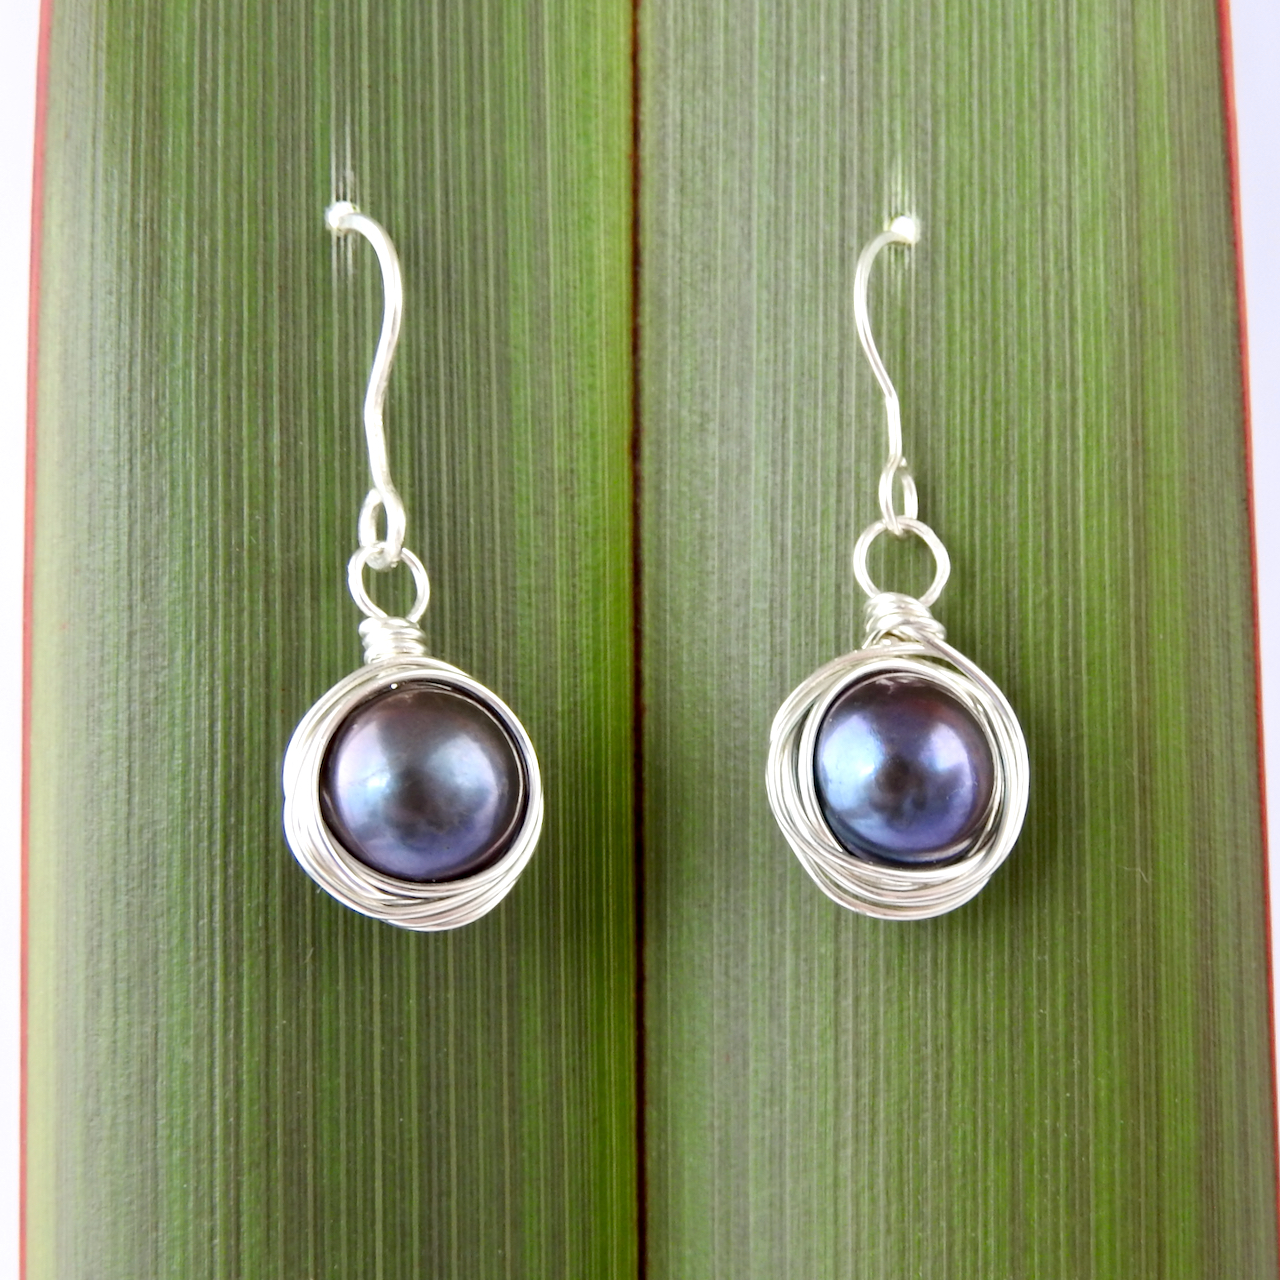 Black Pearl Round Wrapped Recycled Silver Earrings_Hung in Flax